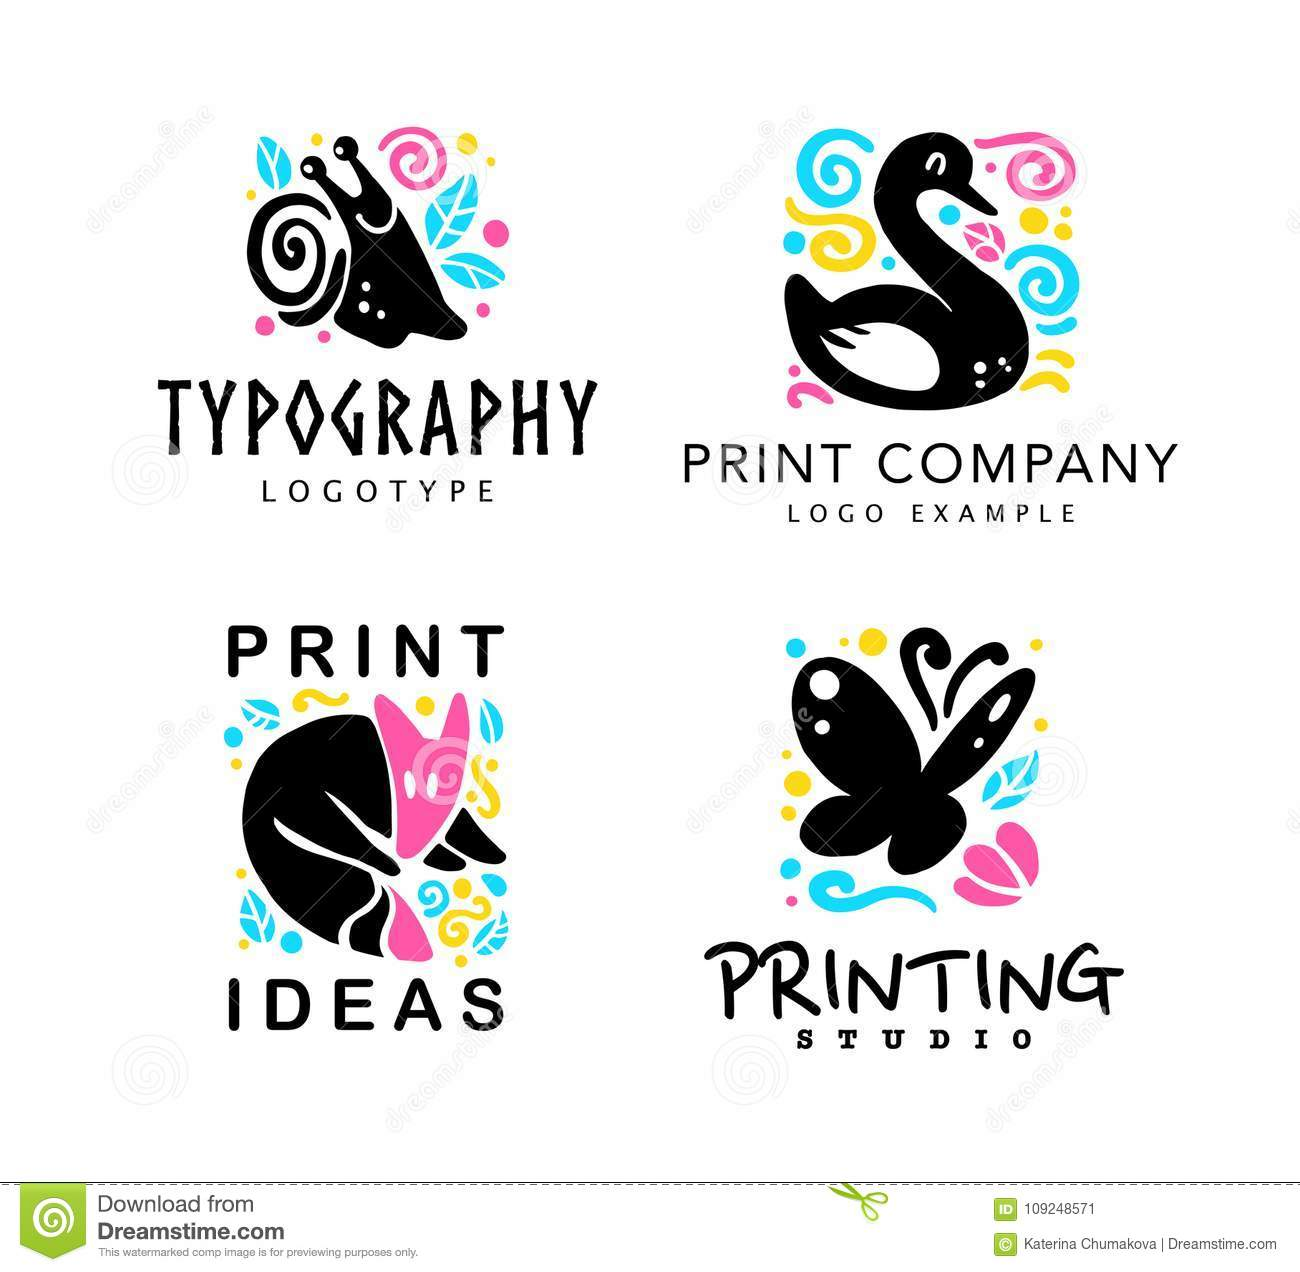 Vector set of typography and design studio logo with cute animals - fox, snail, swan and butterfly.